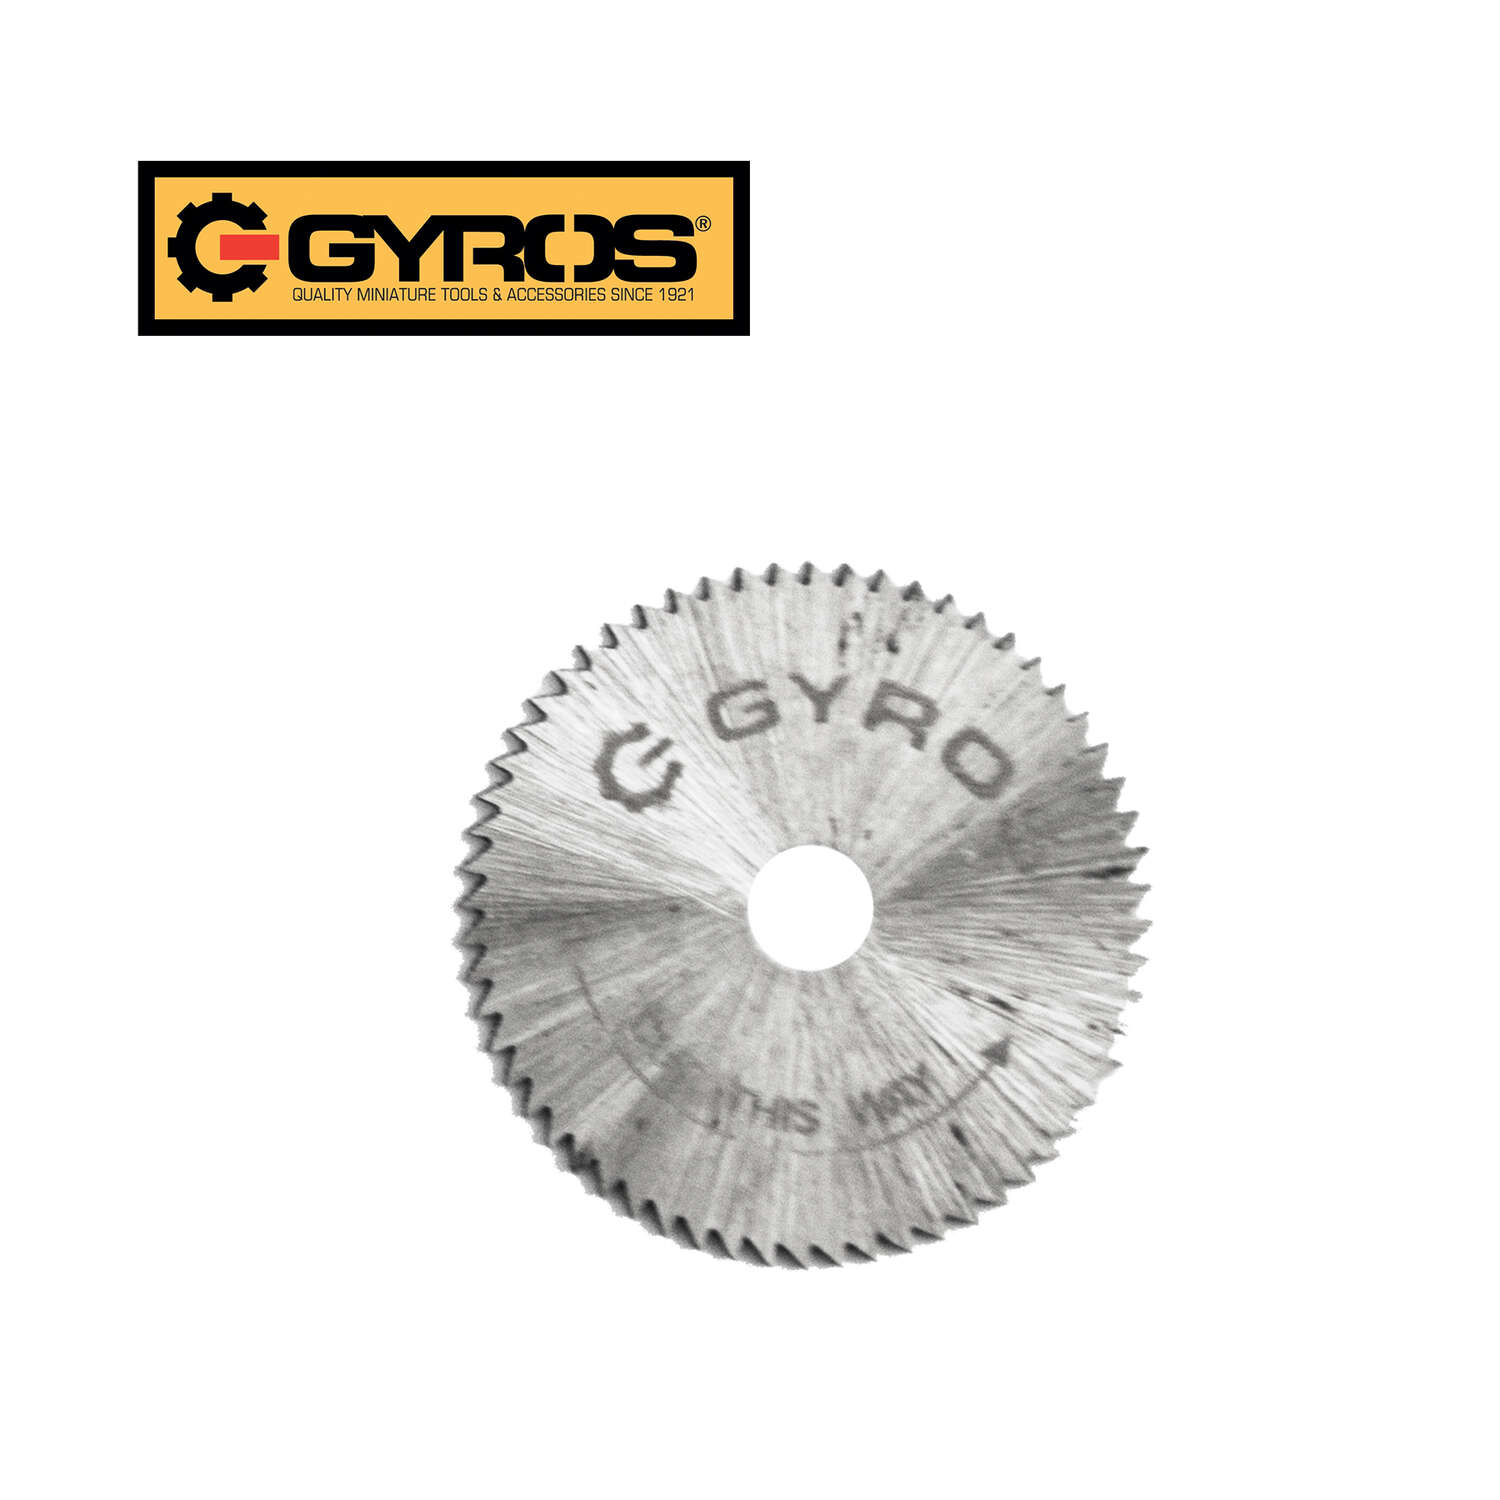 Gyros Tools  0.015 in.  Steel  Circular Saw Blade  1/8 in.  60 teeth 1 pk Circular Power Saw Blades